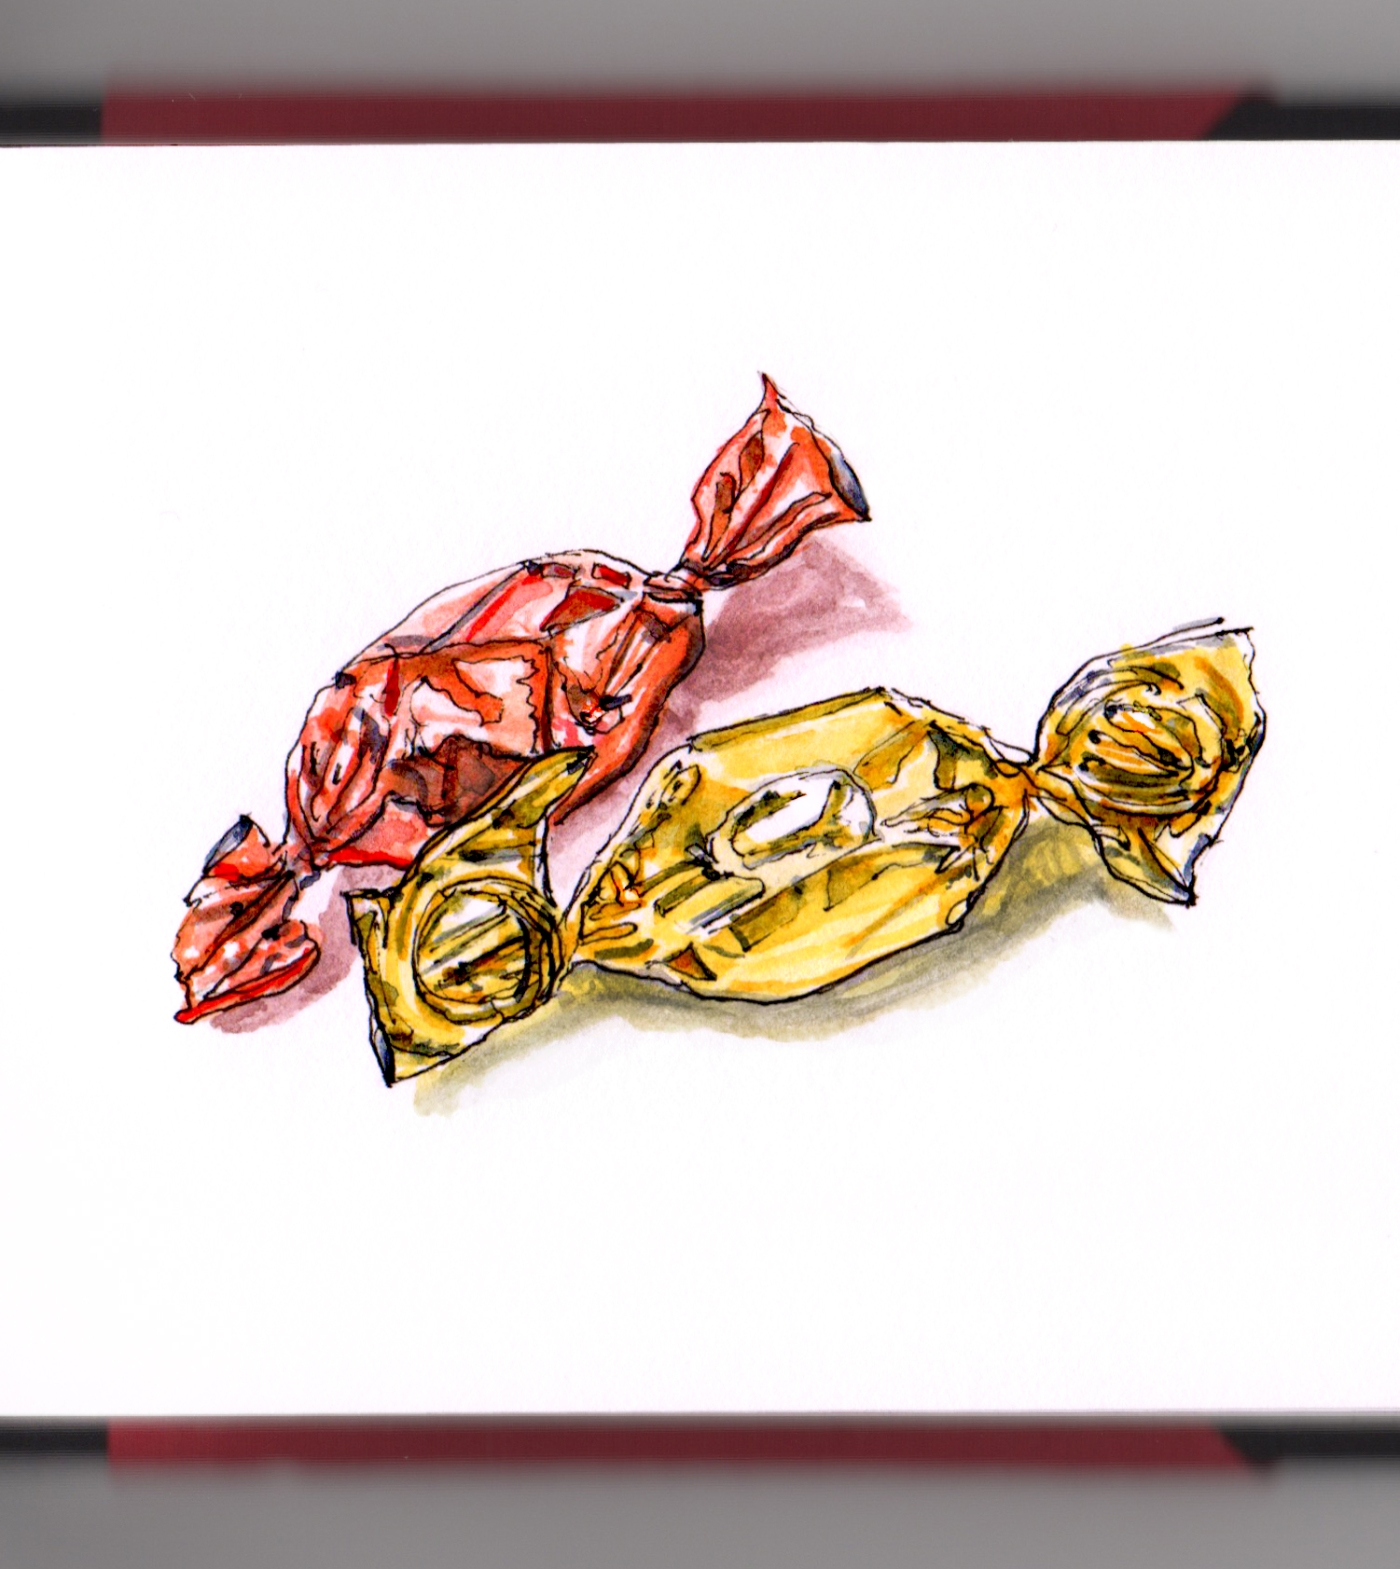 Day 18 - #WorldWatercolorGroup Christmas Candy Foil Wrapped Hard Candy Gold and Red